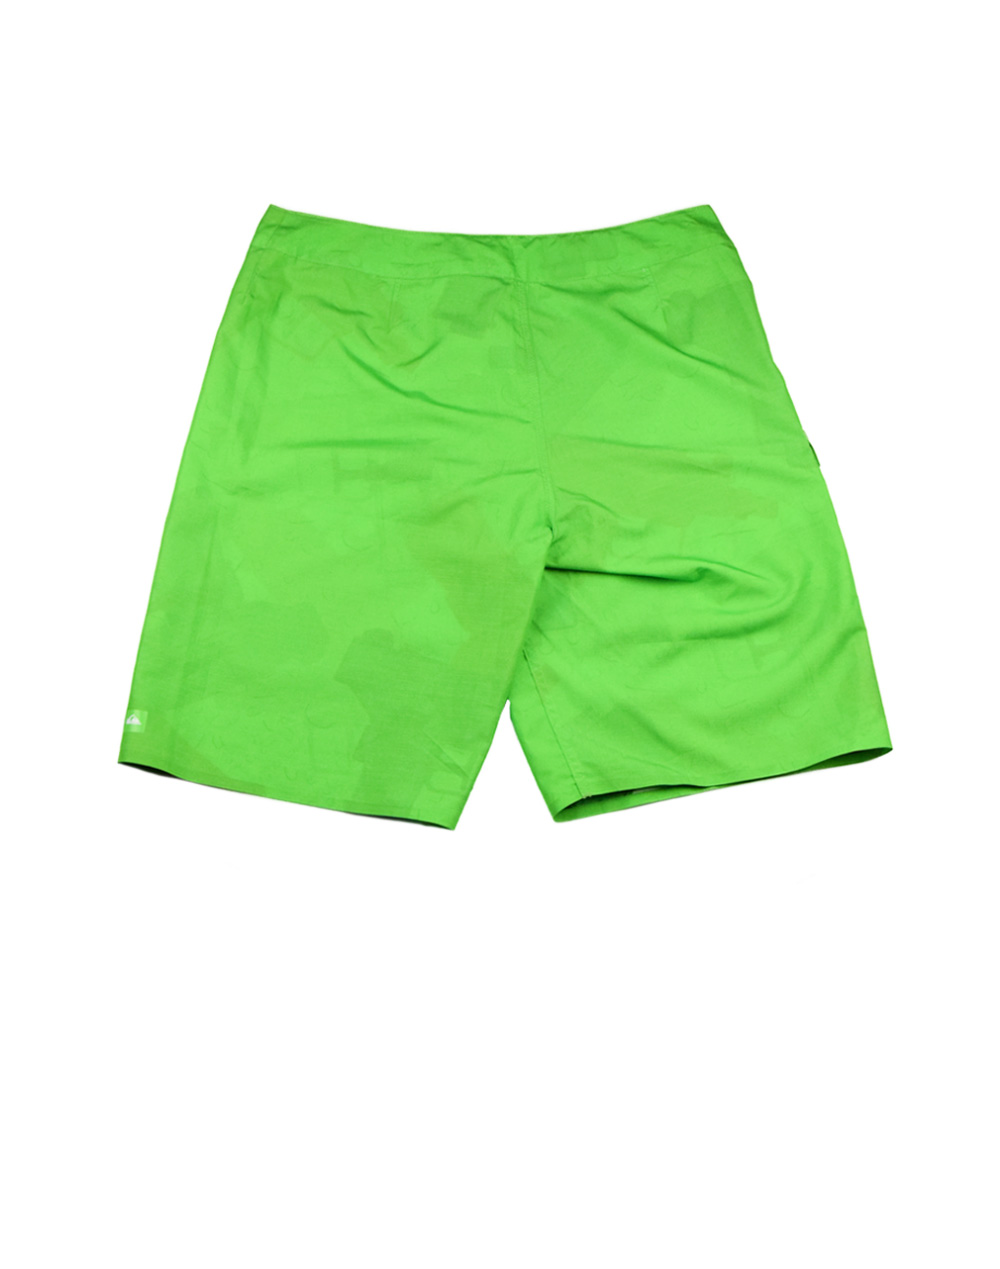 Quiksilver Pistols Lime (KIMBS386)